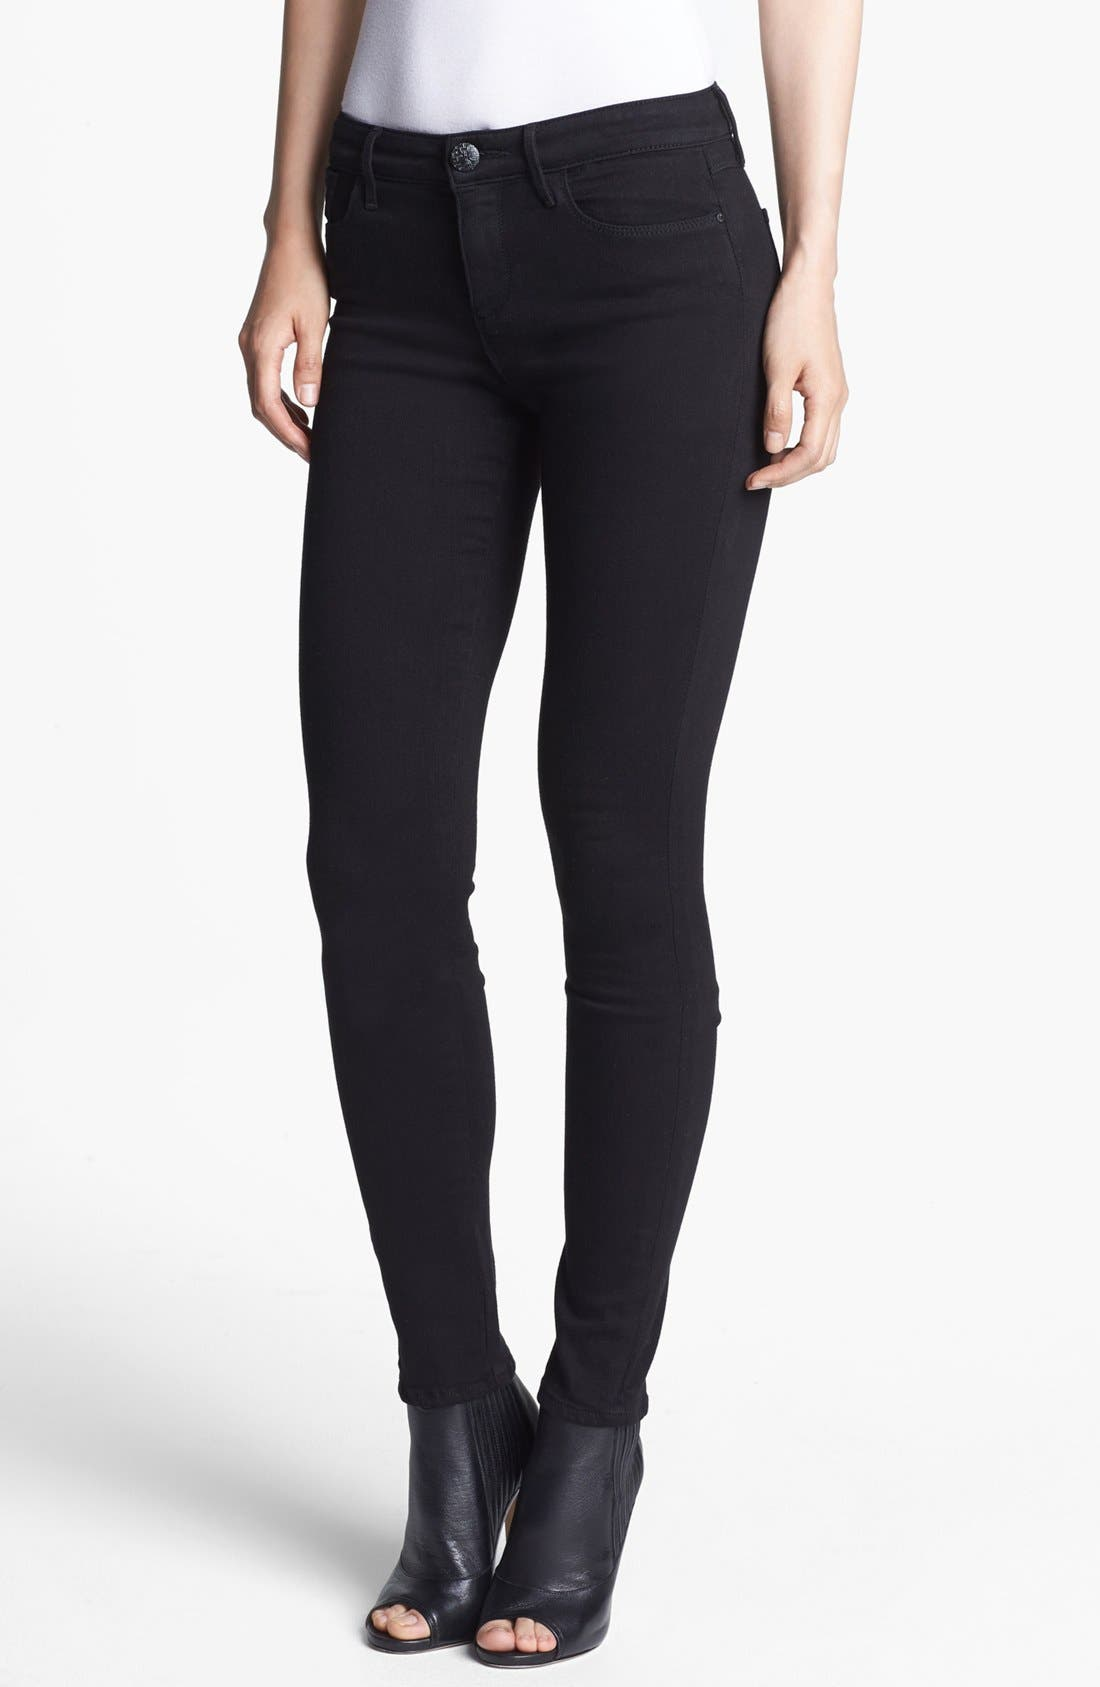 Alternate Image 1 Selected - Habitual 'Eve' Skinny Jeans (Nordstrom Exclusive)